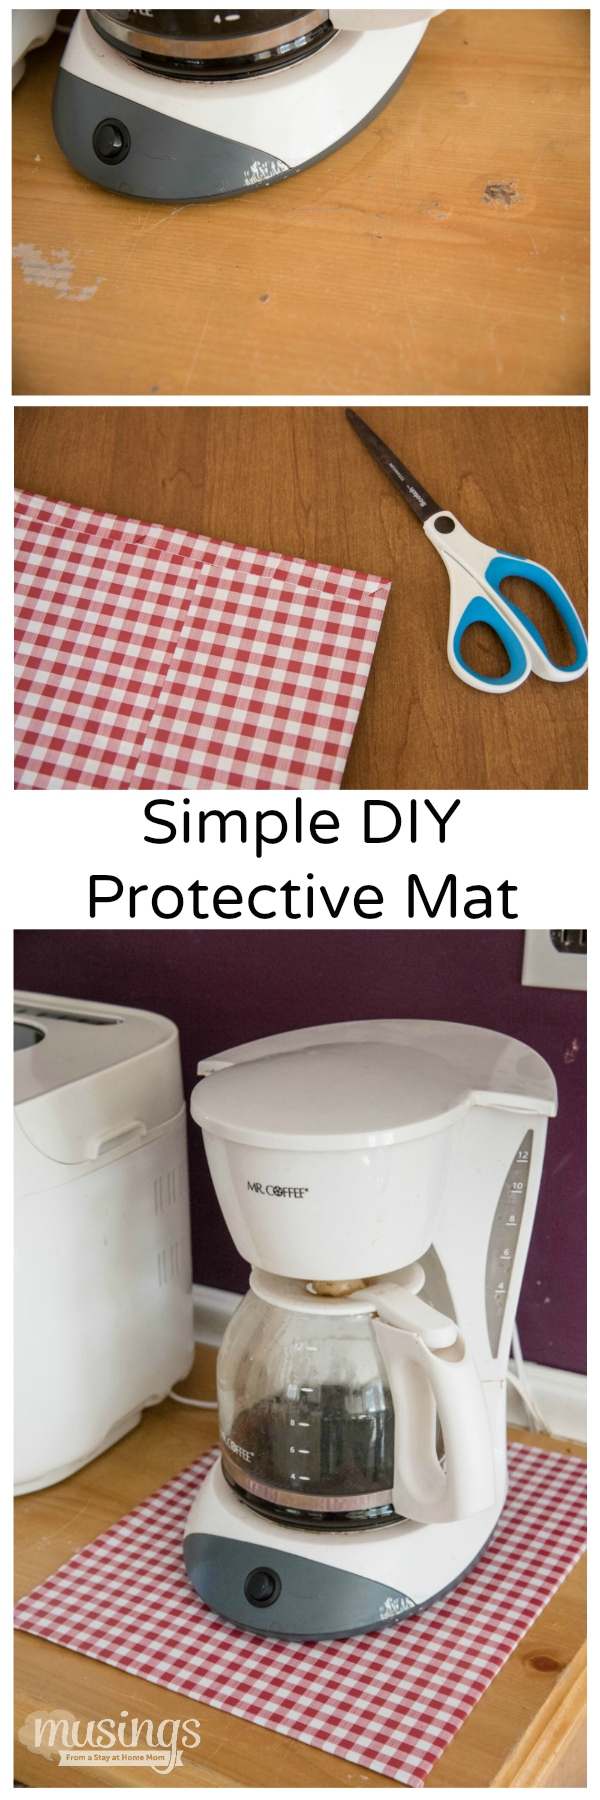 Protect surfaces with this simple DIY protective mat - it's easy to make yourself - in any size or shape you need, plus it's decorated too!